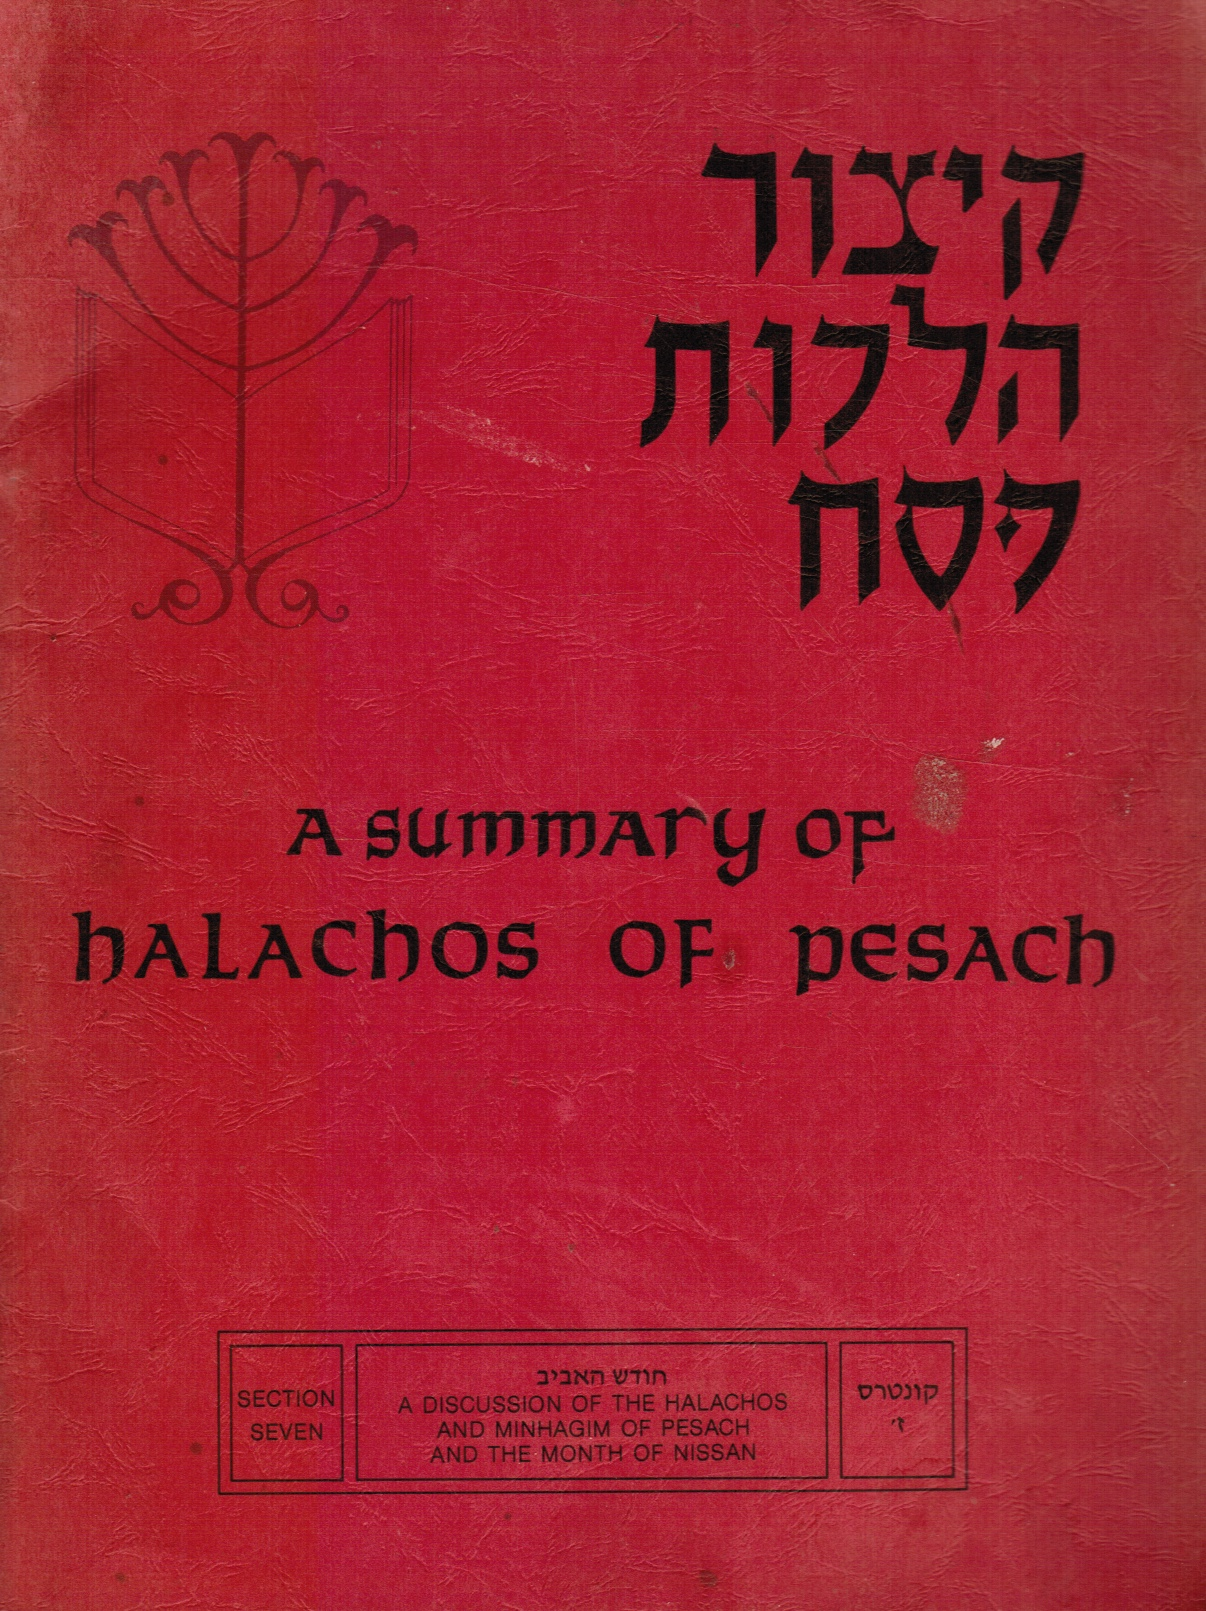 Image for A Summary of Halachos of Pesach - Section Seven Kitsur Hilkhot Pesah